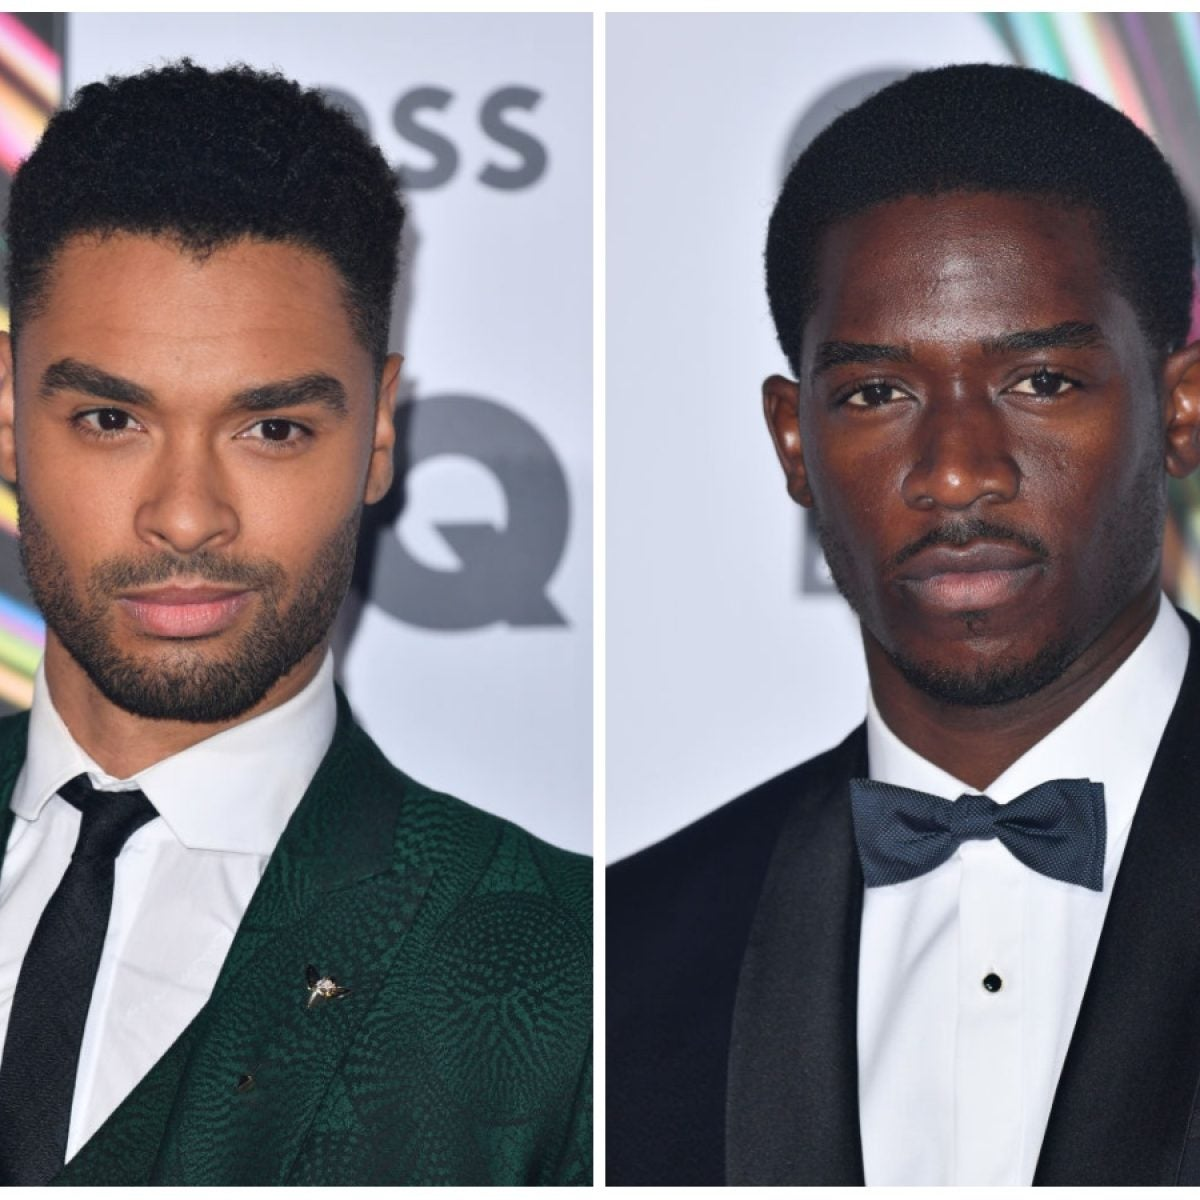 British GQ Held Its Annual Men Of The Year Awards Last Night And It's The Eye Candy For Us